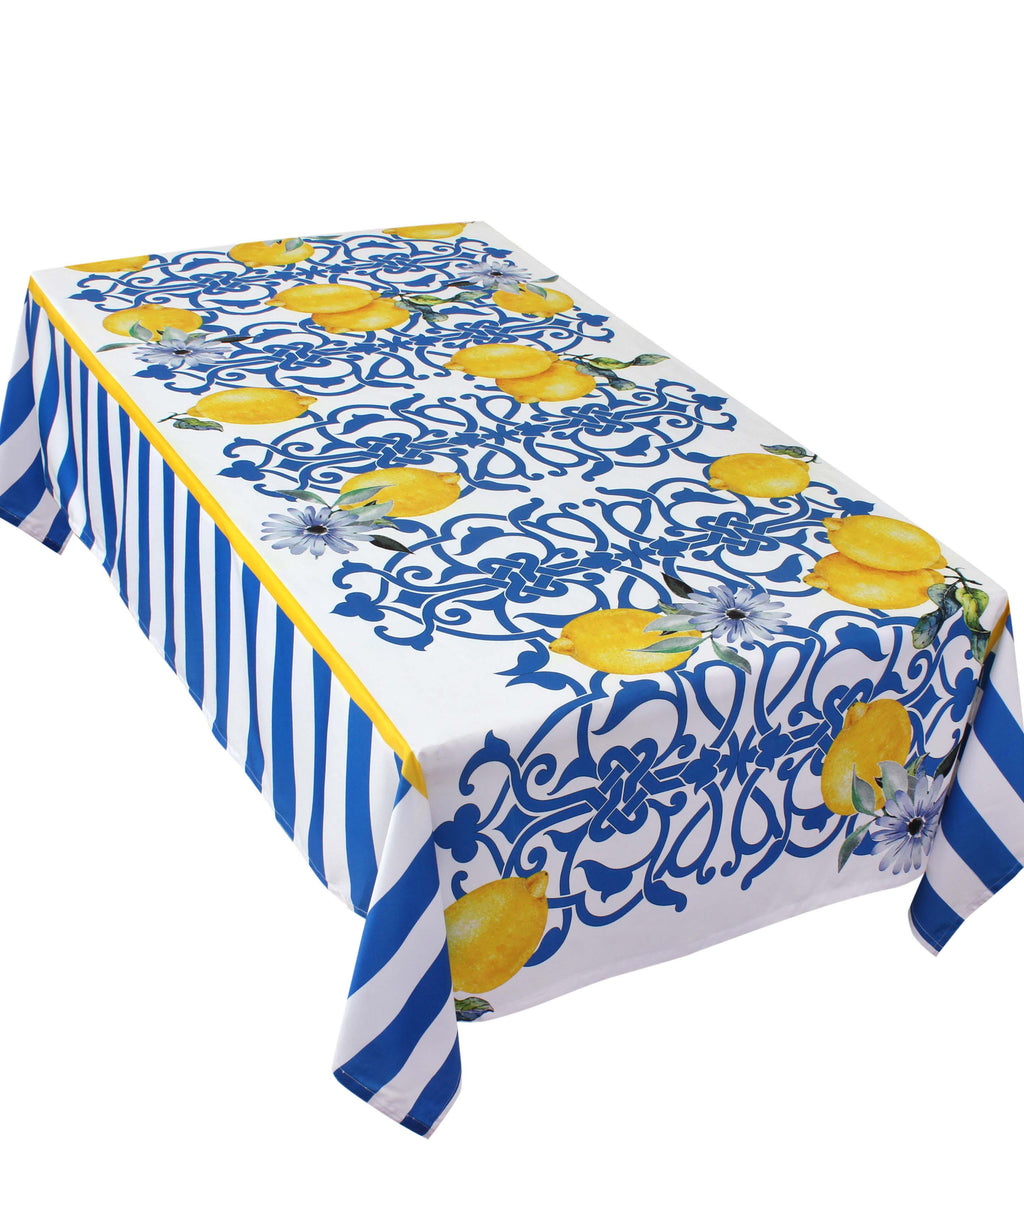 The Fruit Festival Table Cover